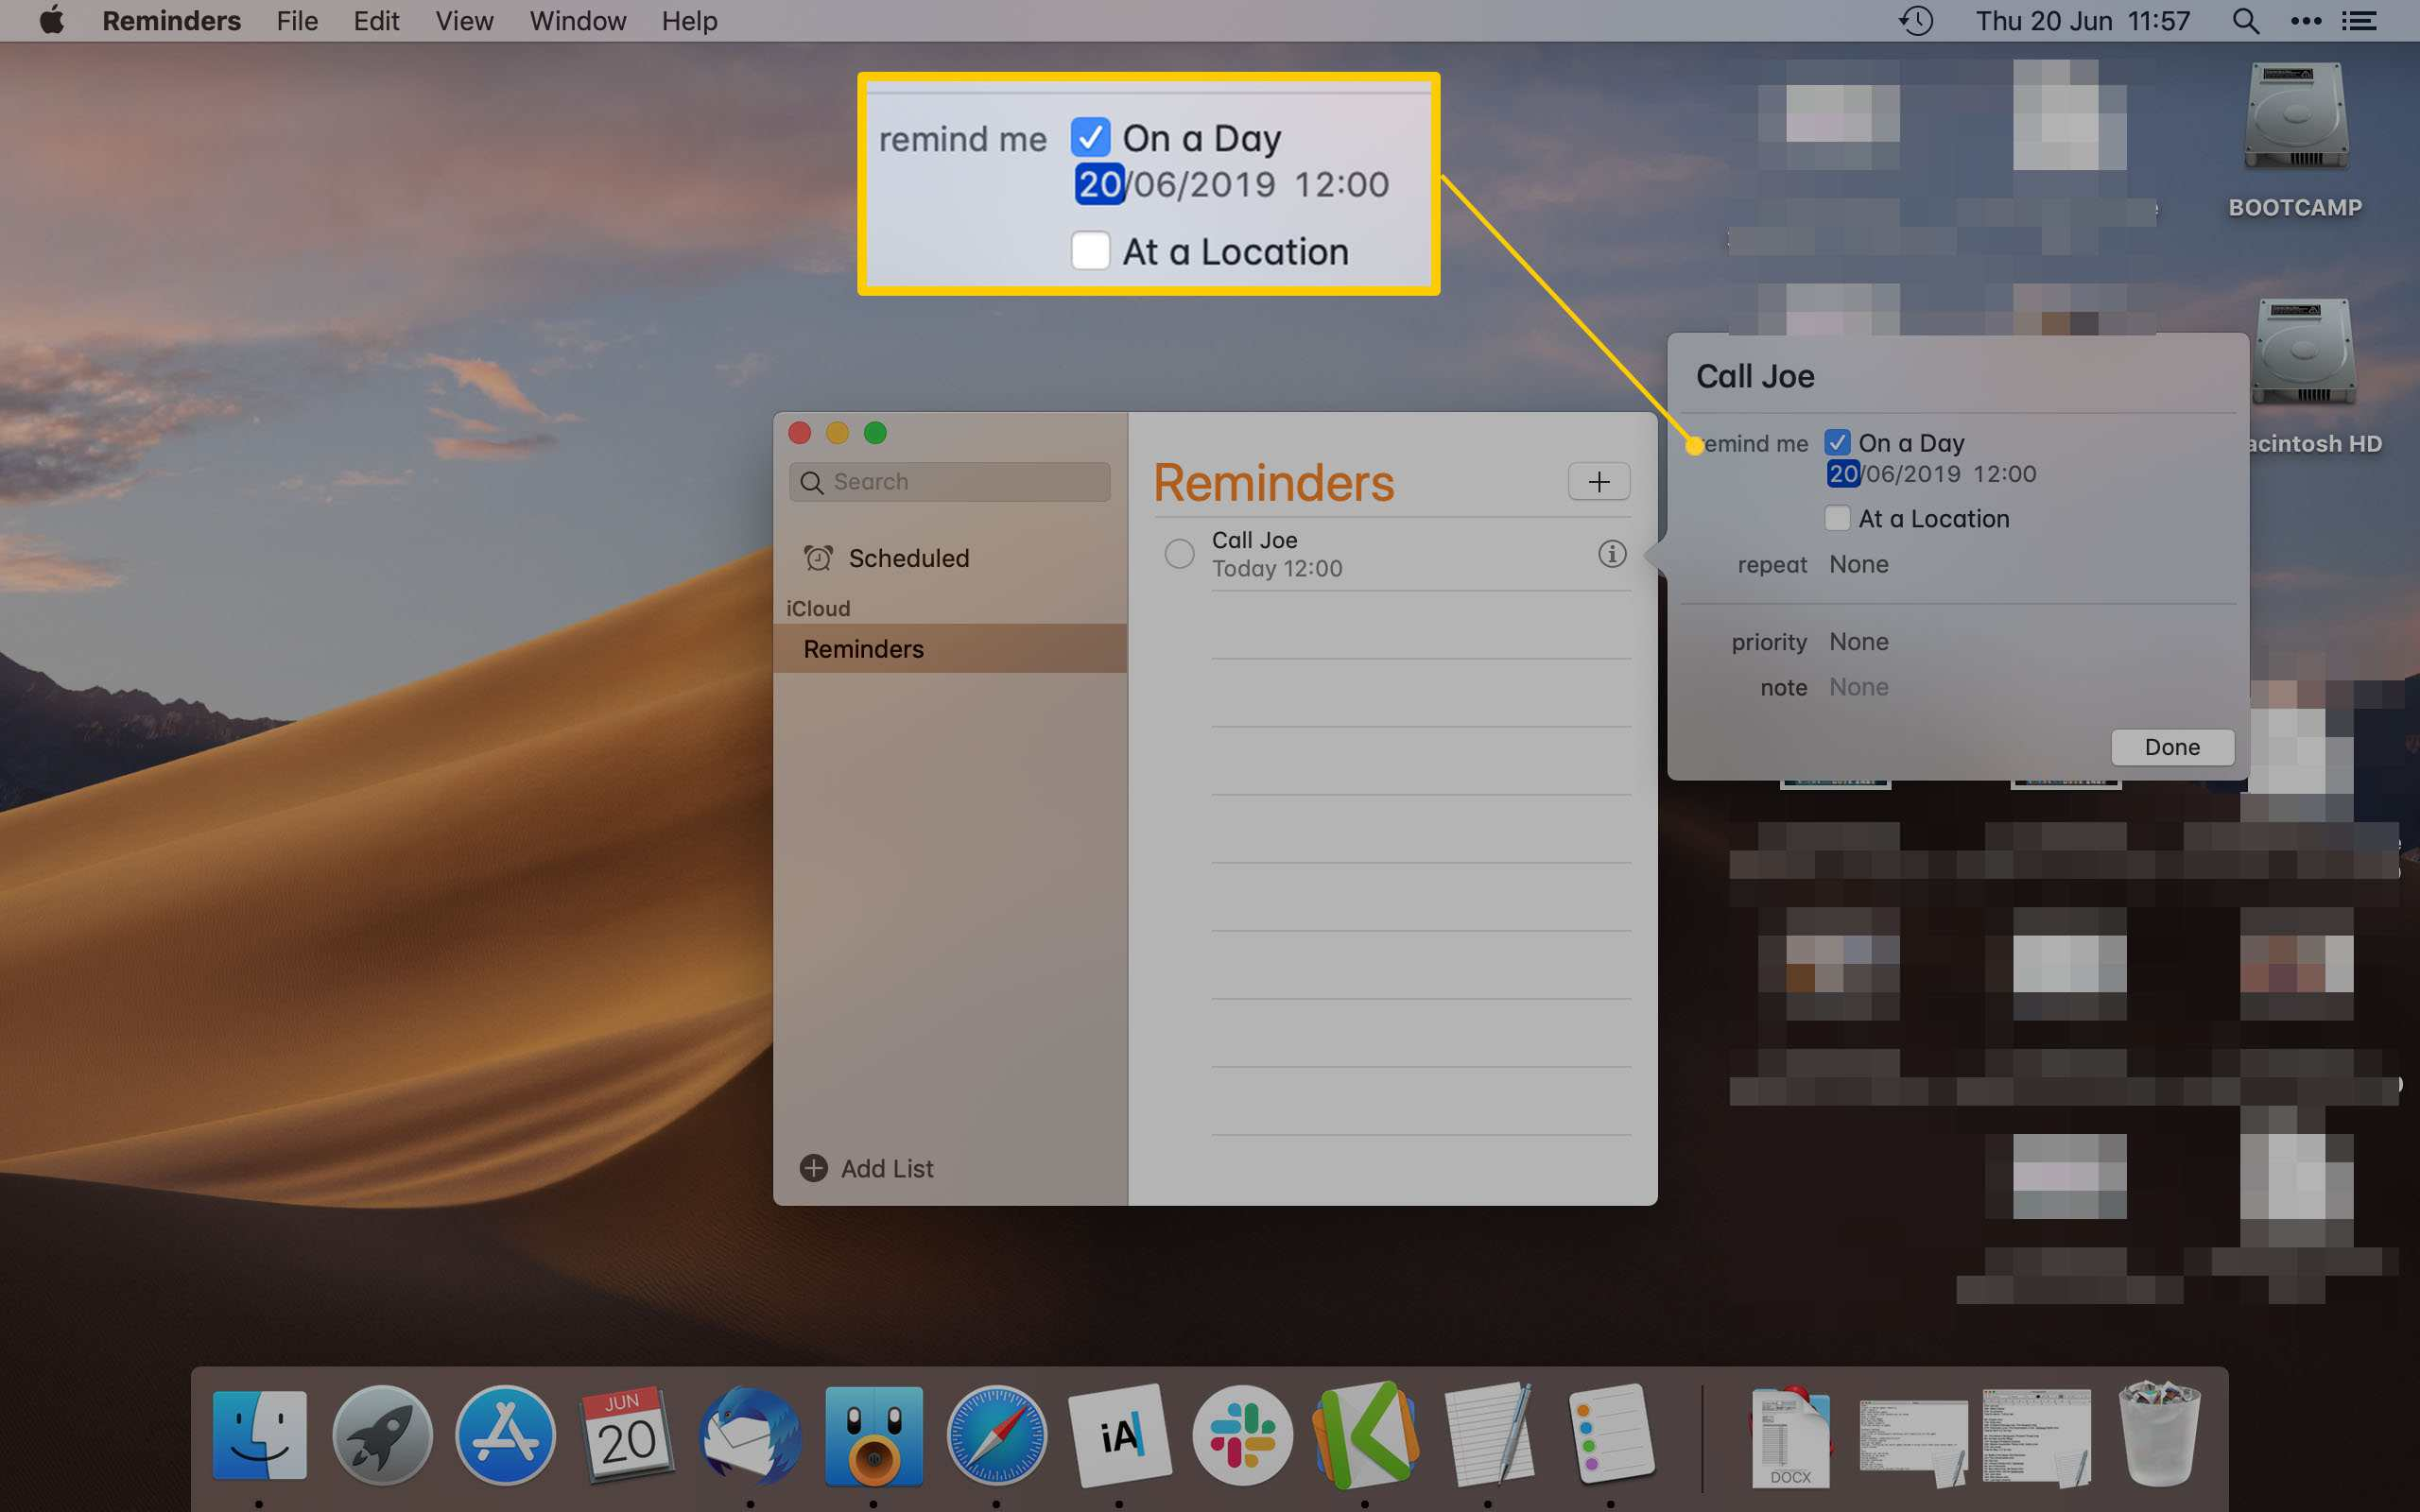 Mac Reminder App Highlighting the Remind On a Day options